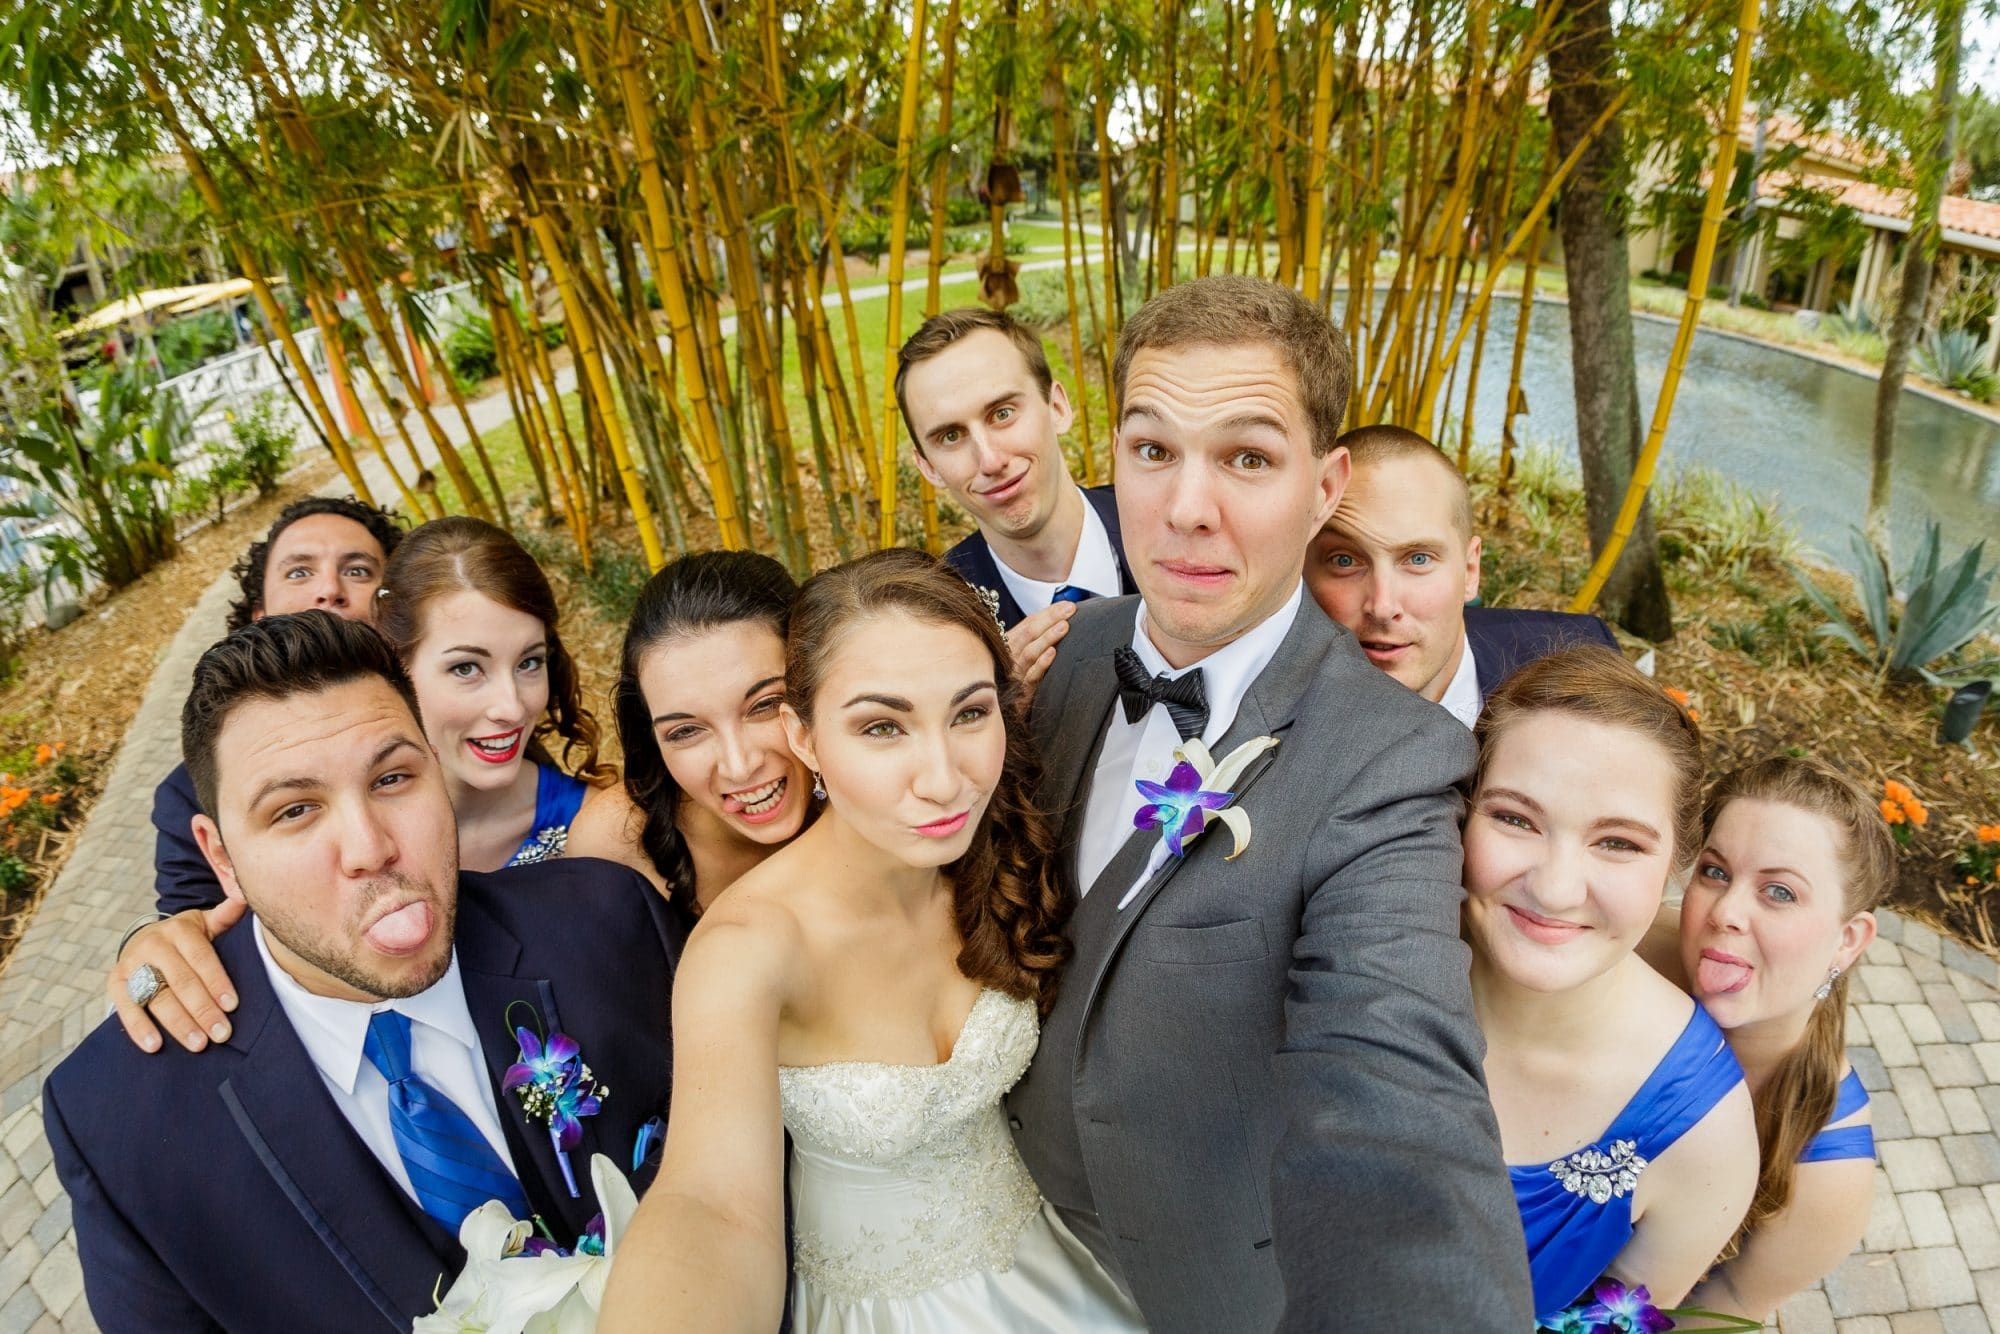 Steven Miller Photography - newlyweds and bridal party taking funny face selfie